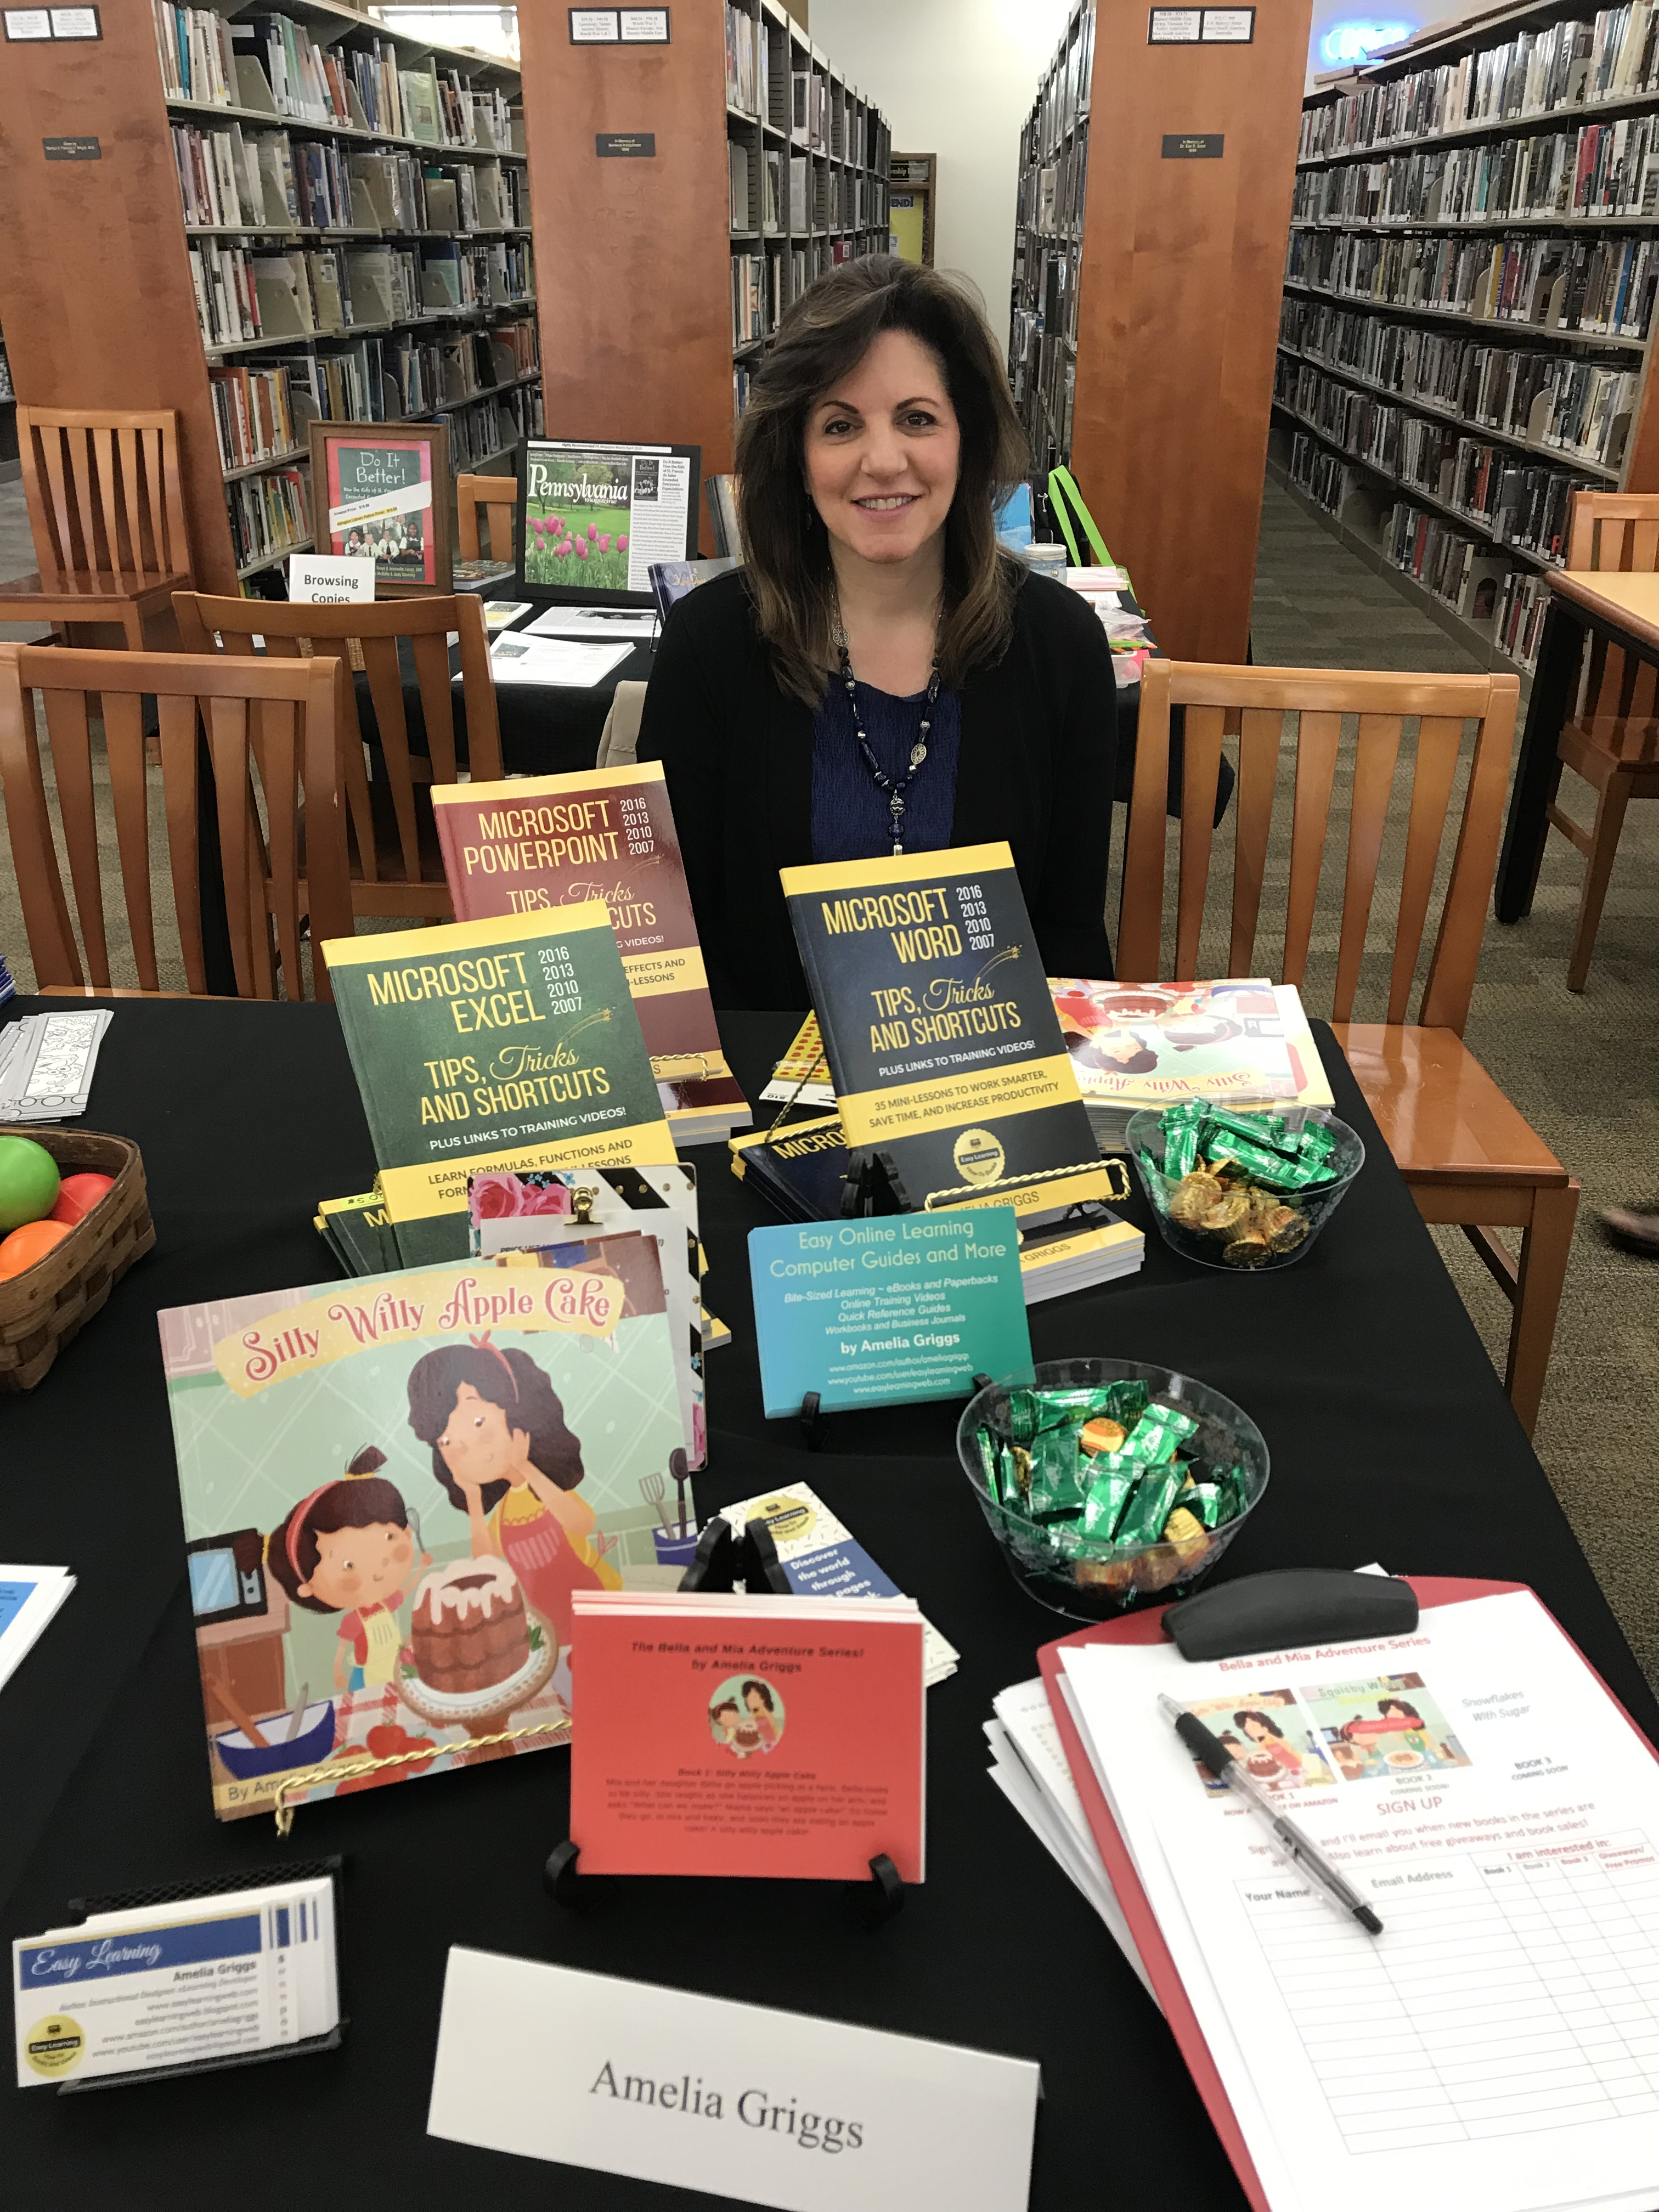 abington library author expo table with books